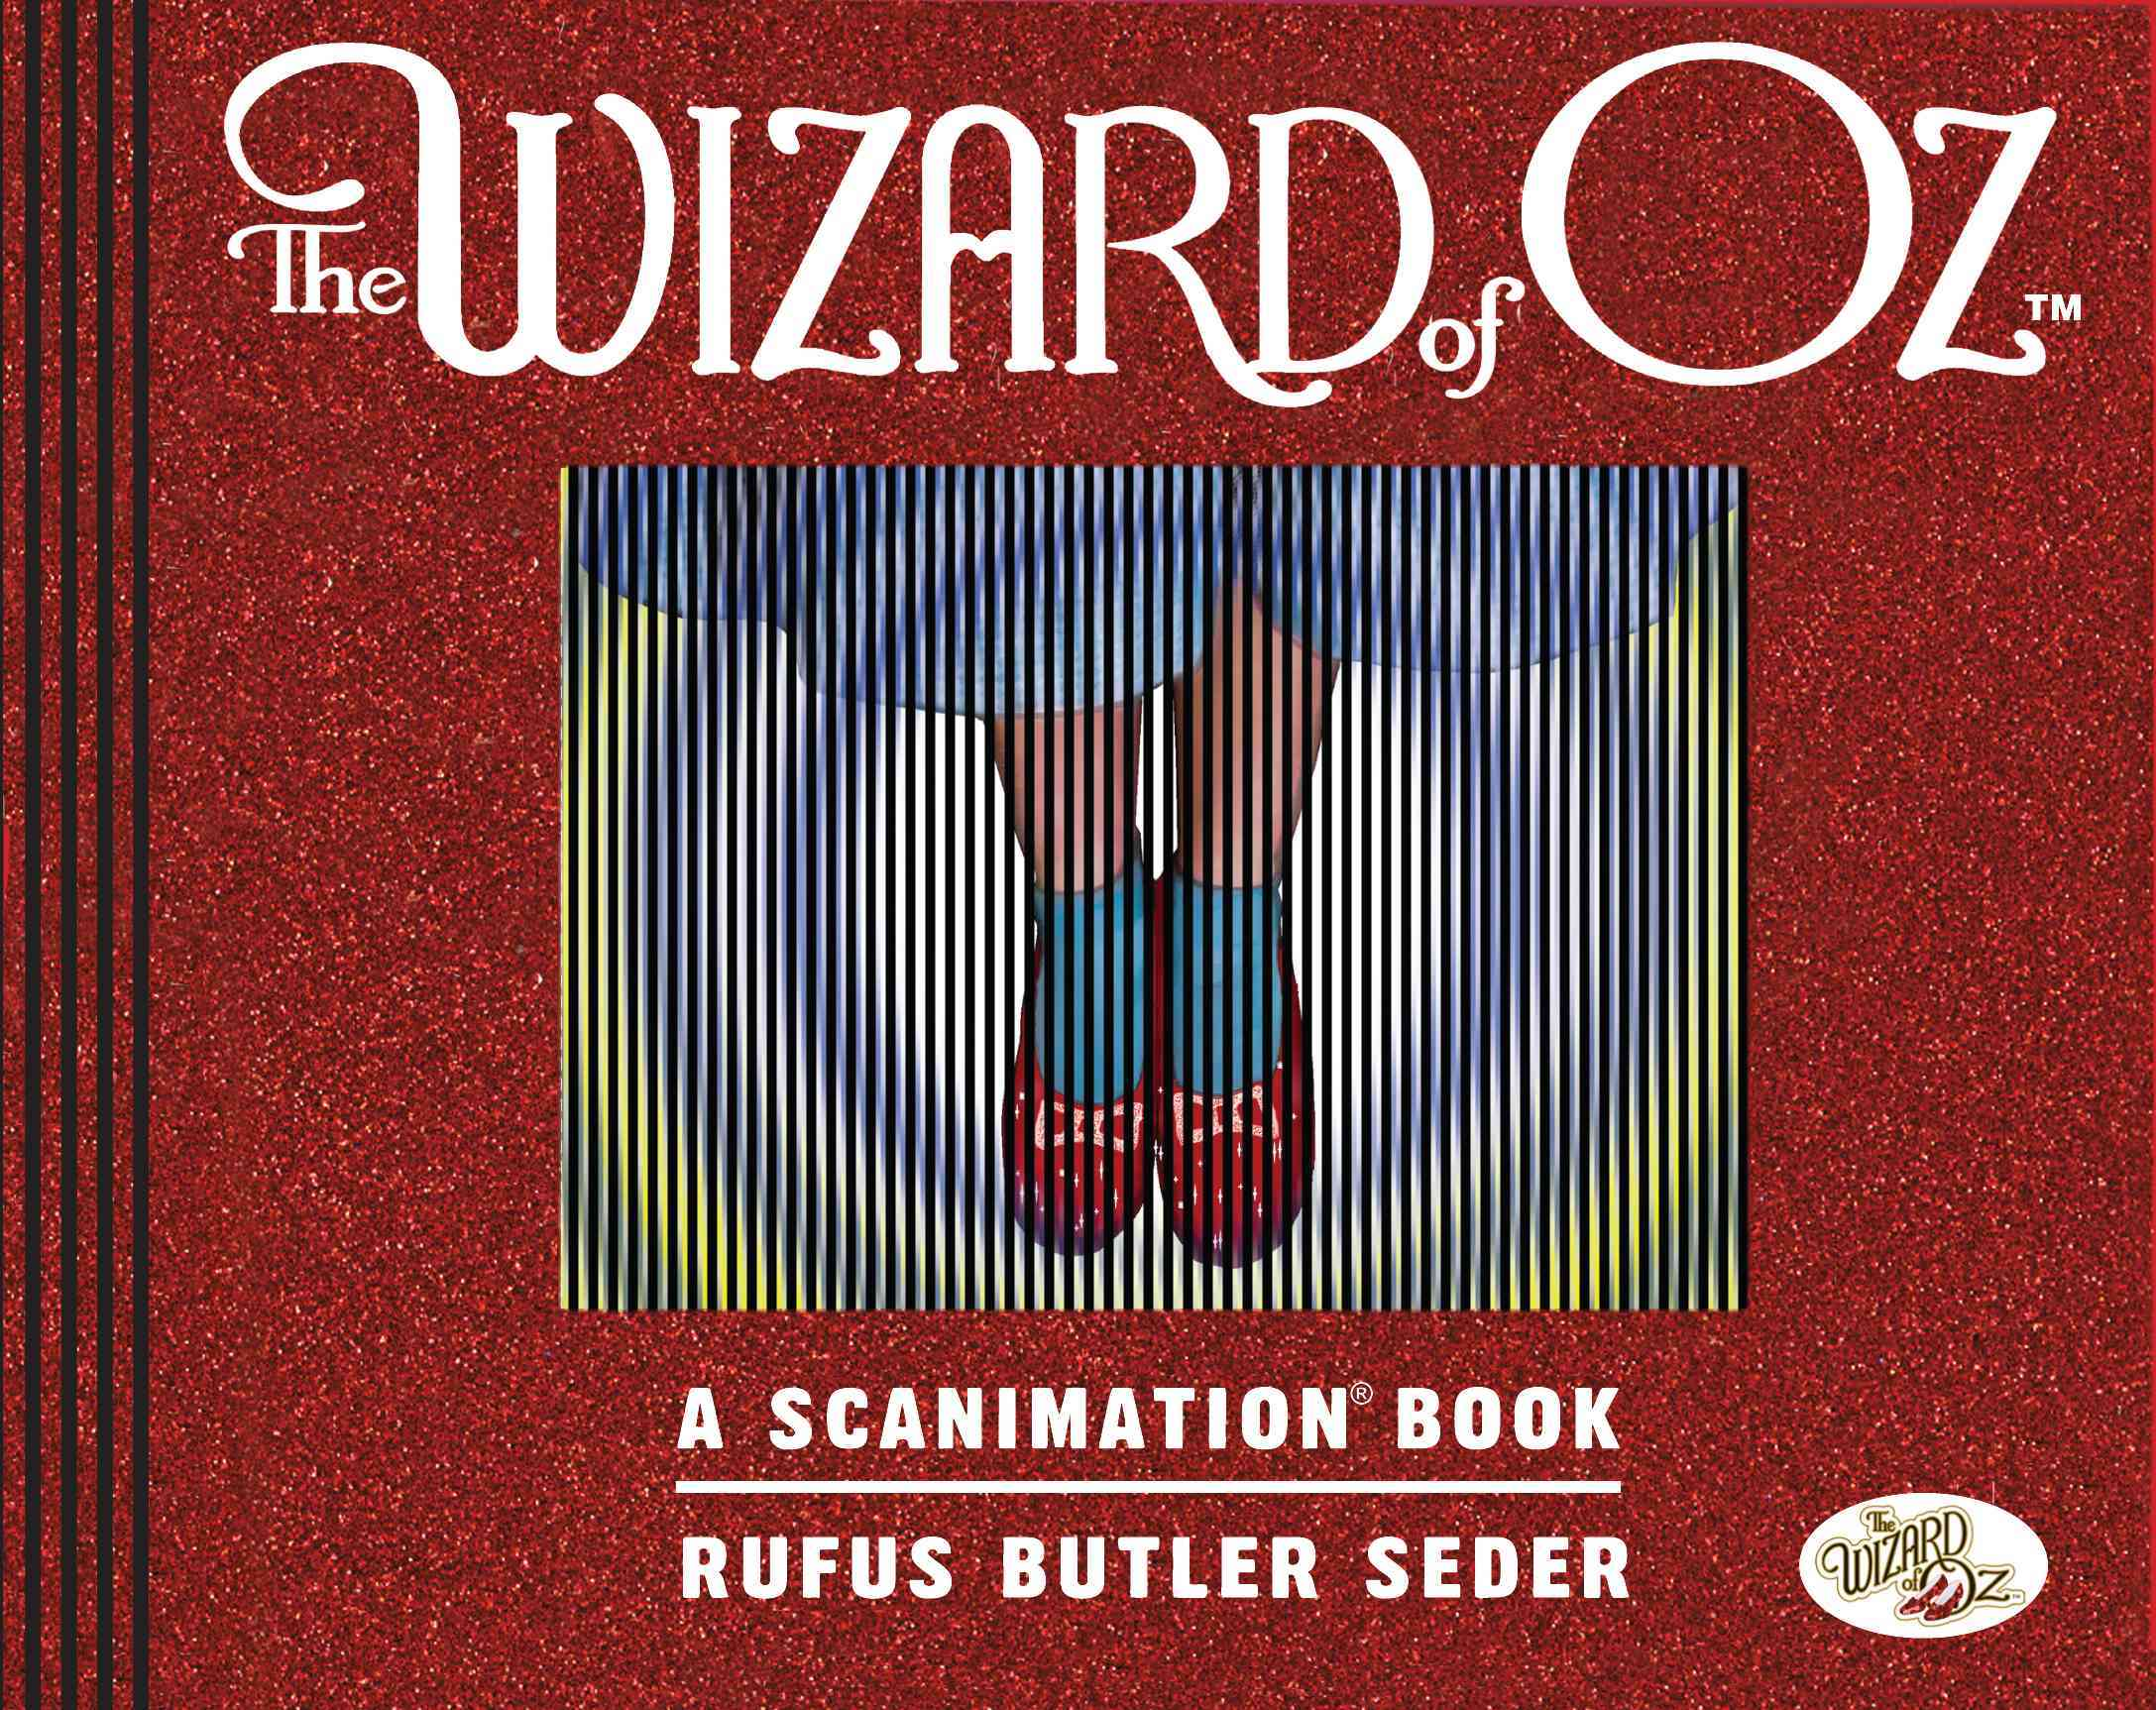 The Wizard of Oz: A Scanimation Book (Hardcover)